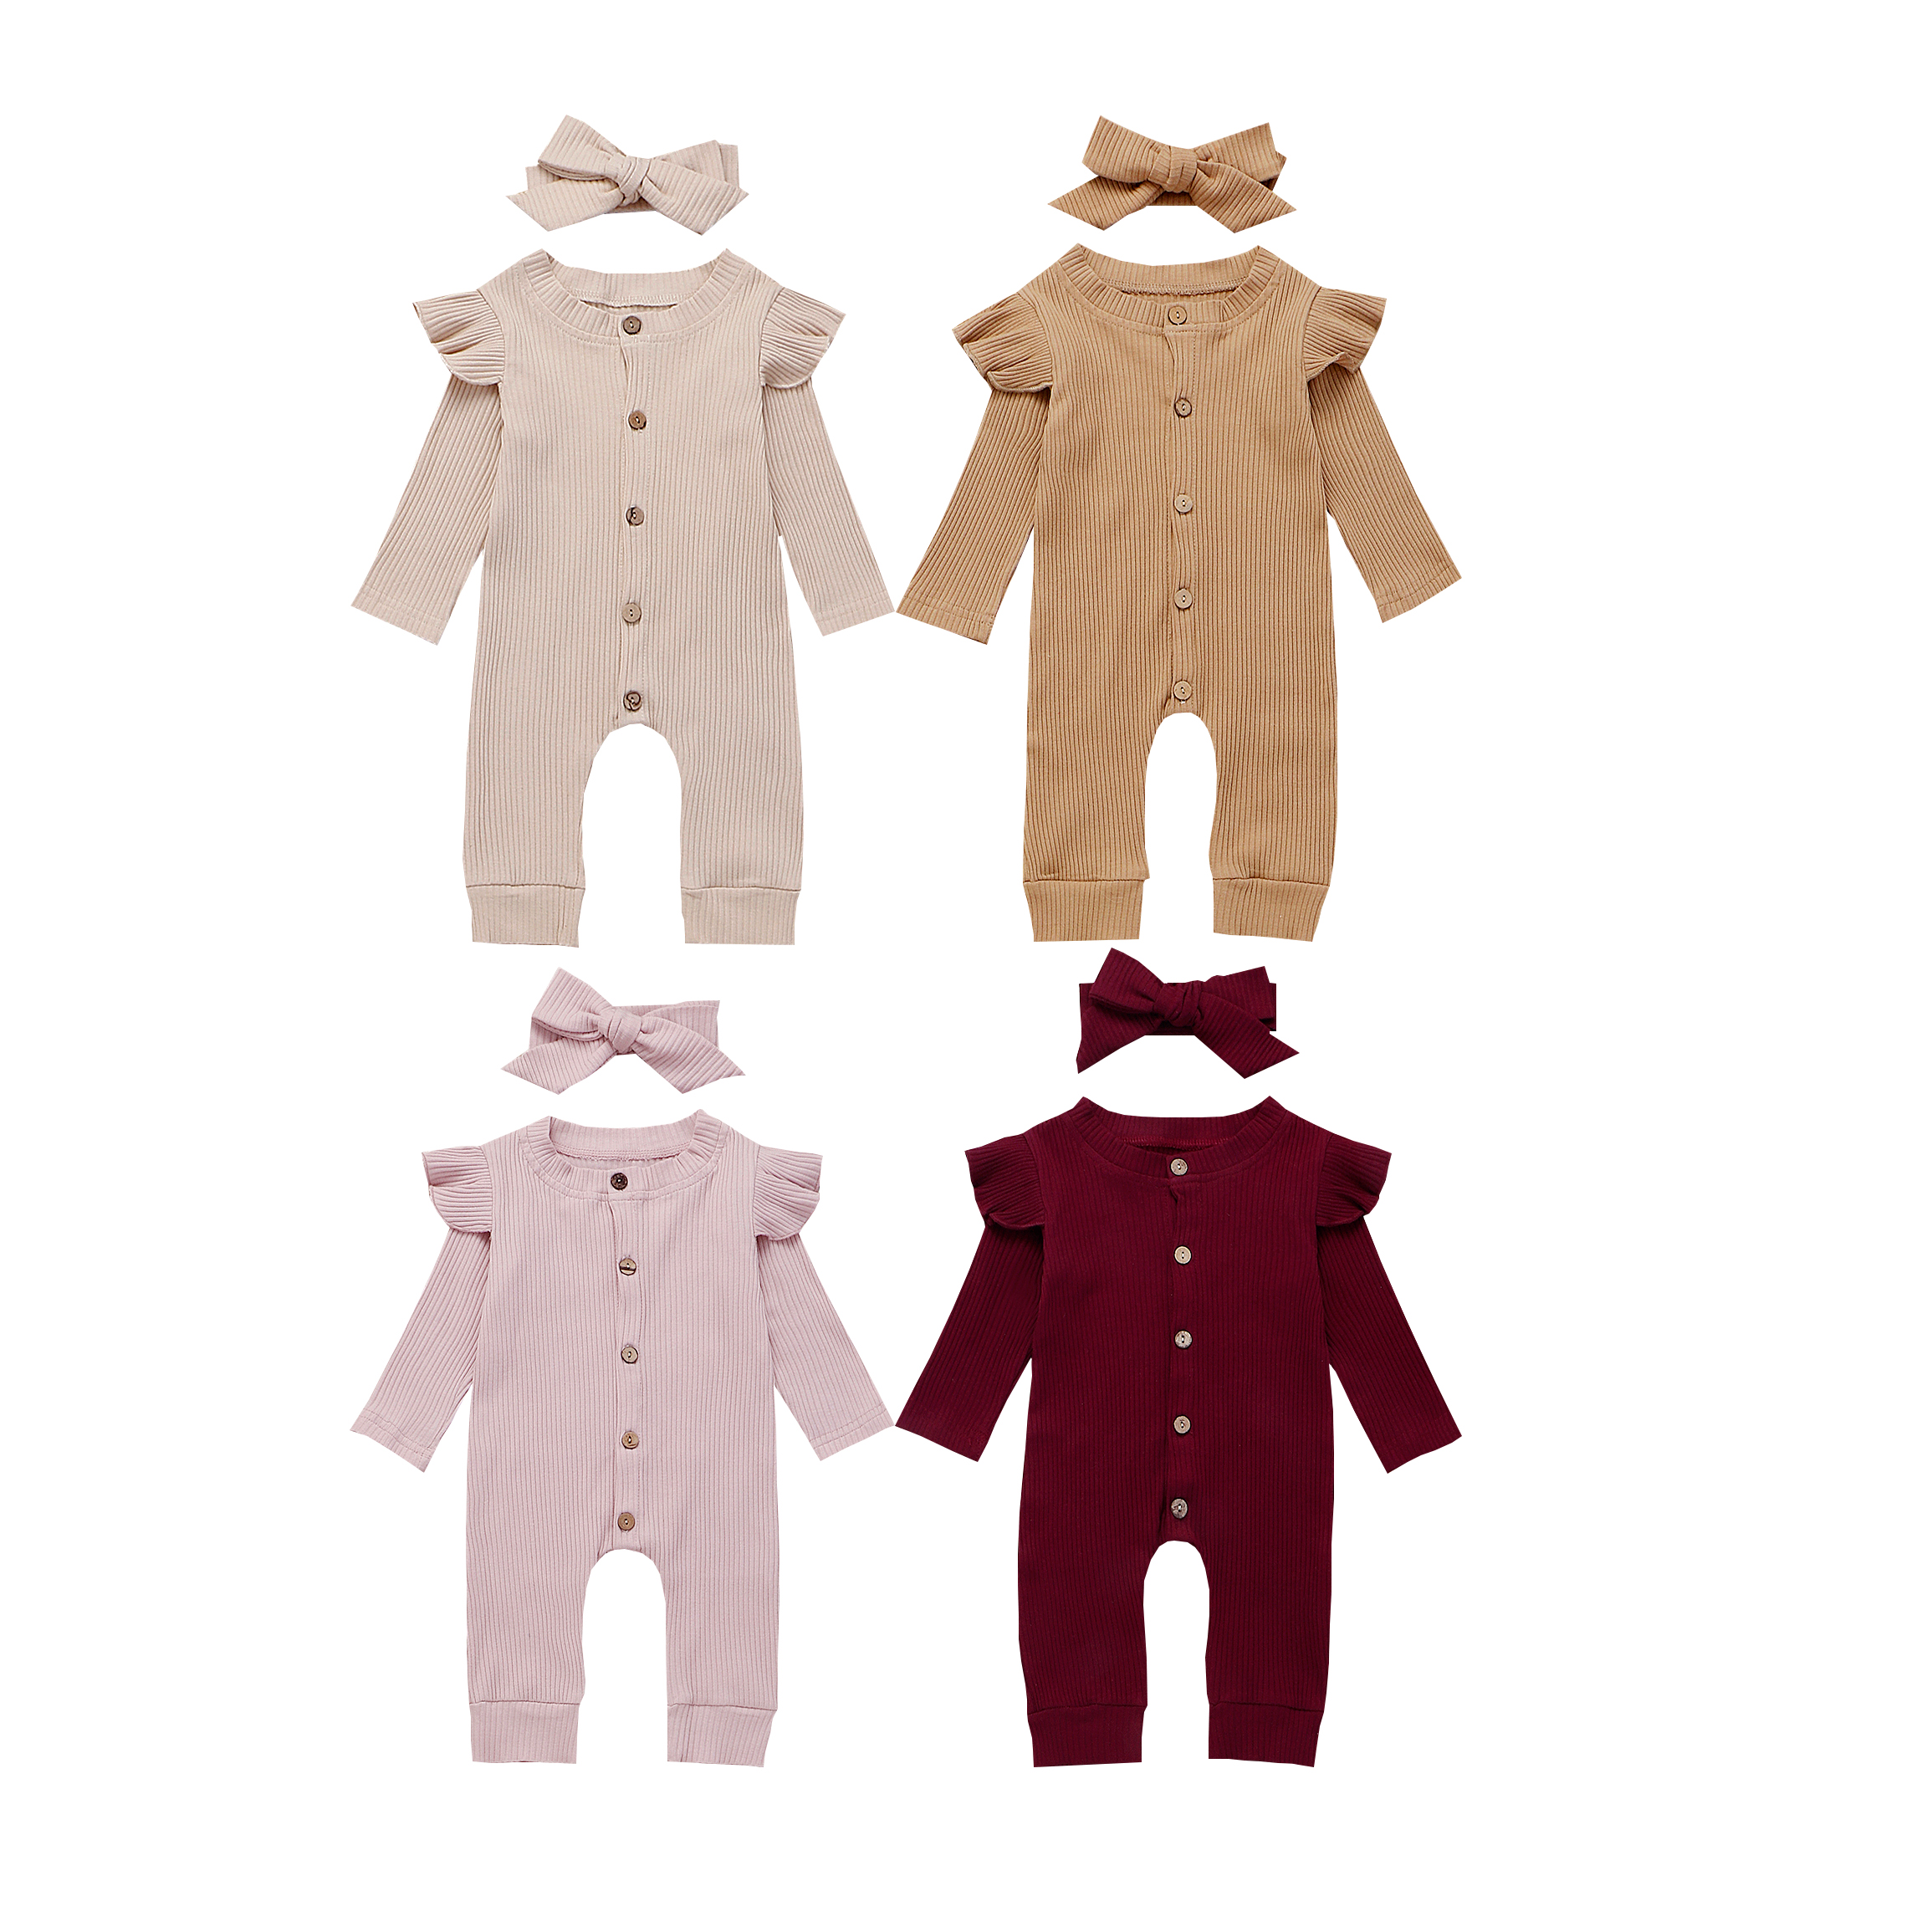 2PCS Newborn Baby Girl Boy Rompers Autumn Striped Clothes Knitted Cotton Long Flying Sleeve Jumpsuit Bow Solid Headband Outfits